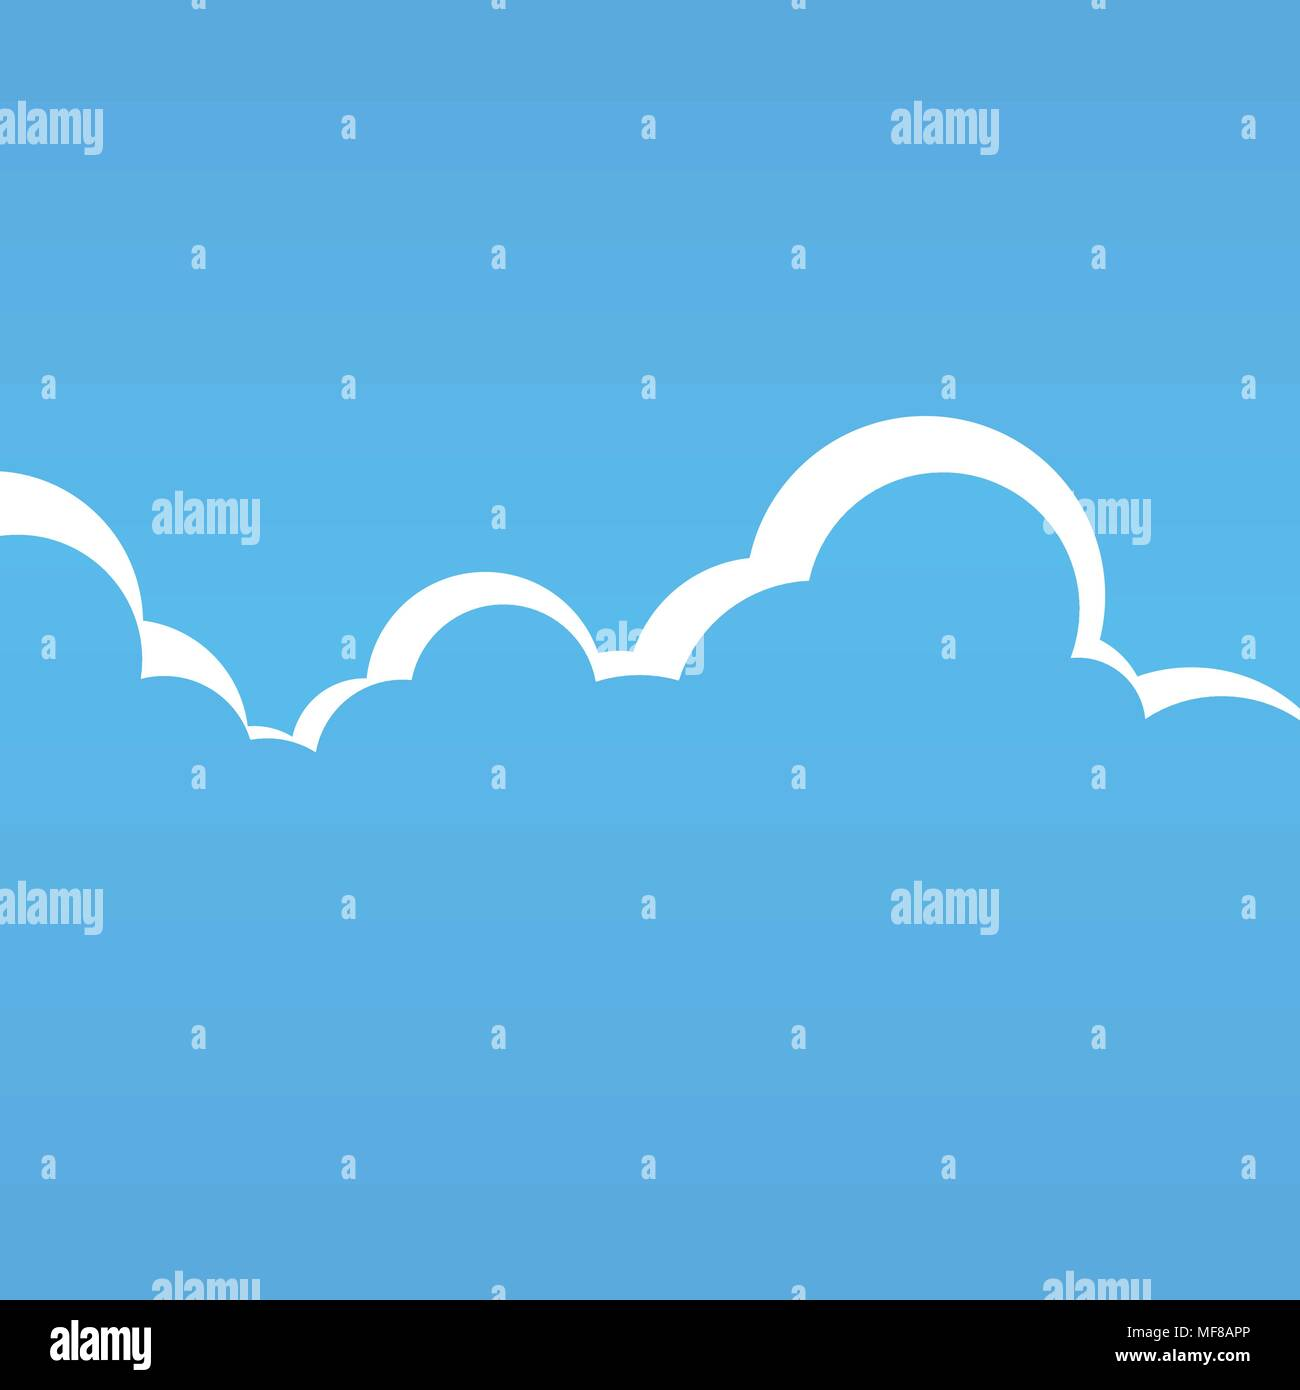 Vector Cartoon Cloudspace Illustration - Stock Image